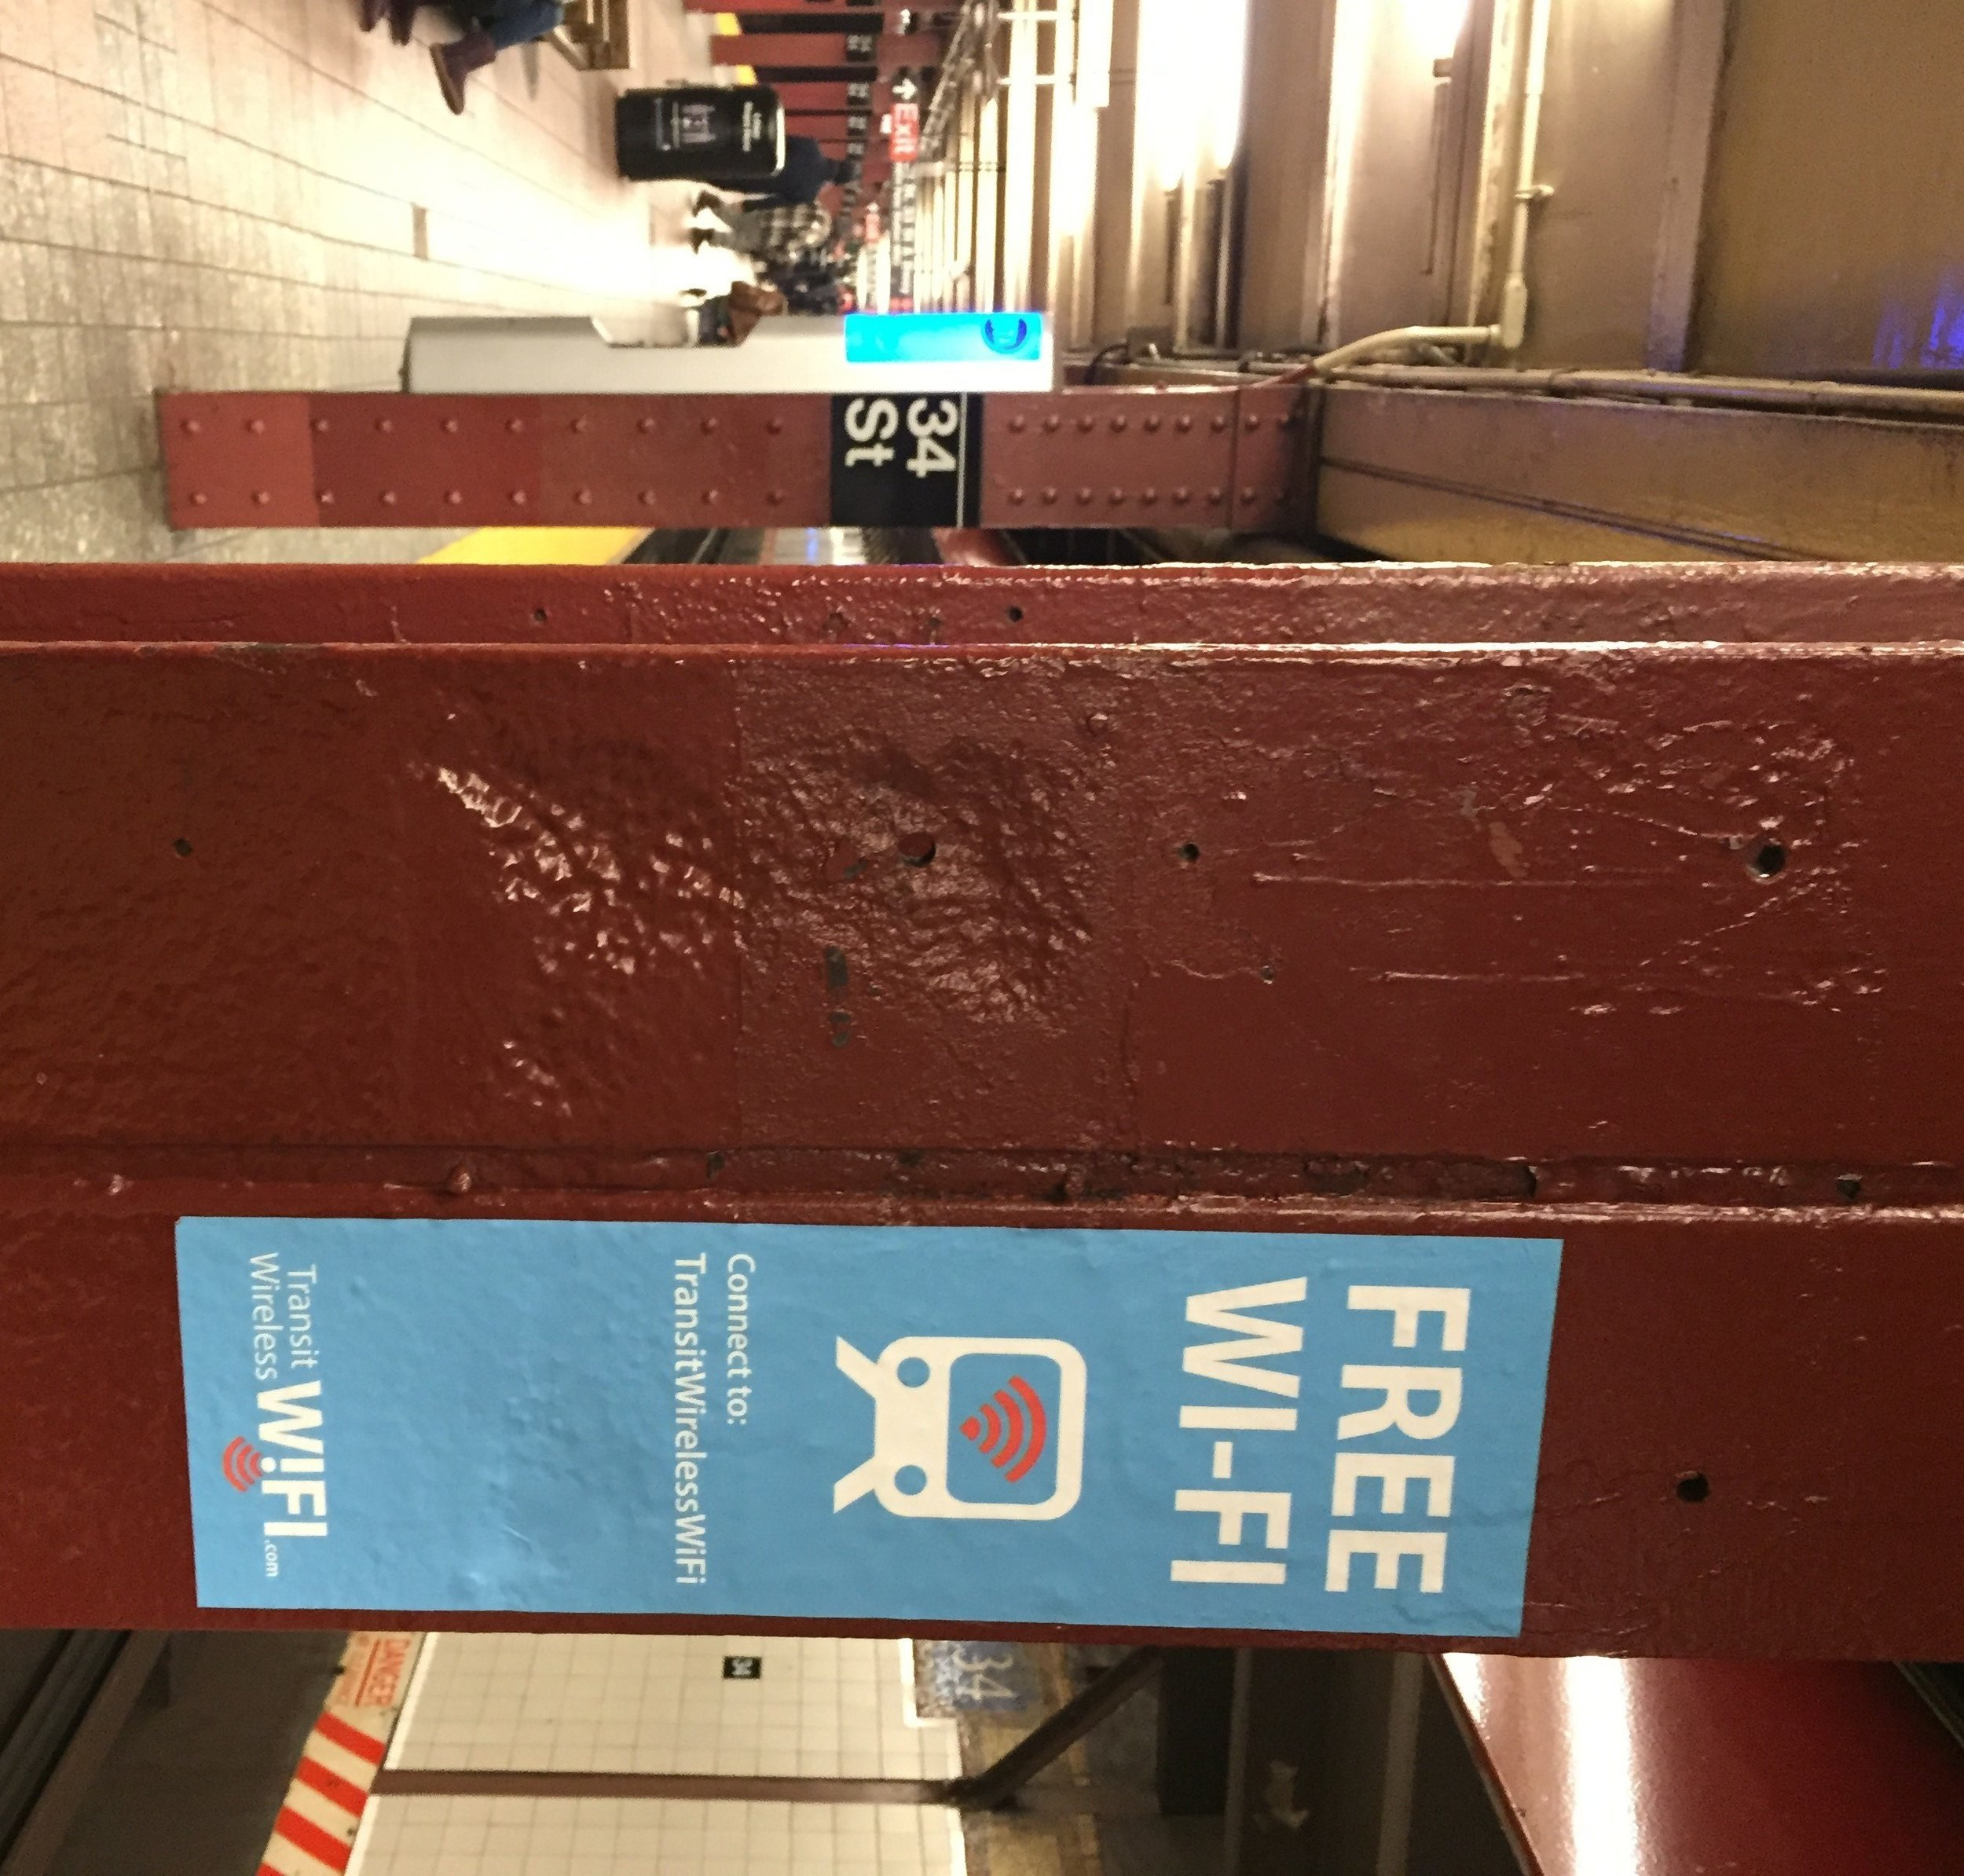 The MTA has added Wi-Fi connection to Herald Square-34th Street and other subway stations. Photo by Michael Martinez.